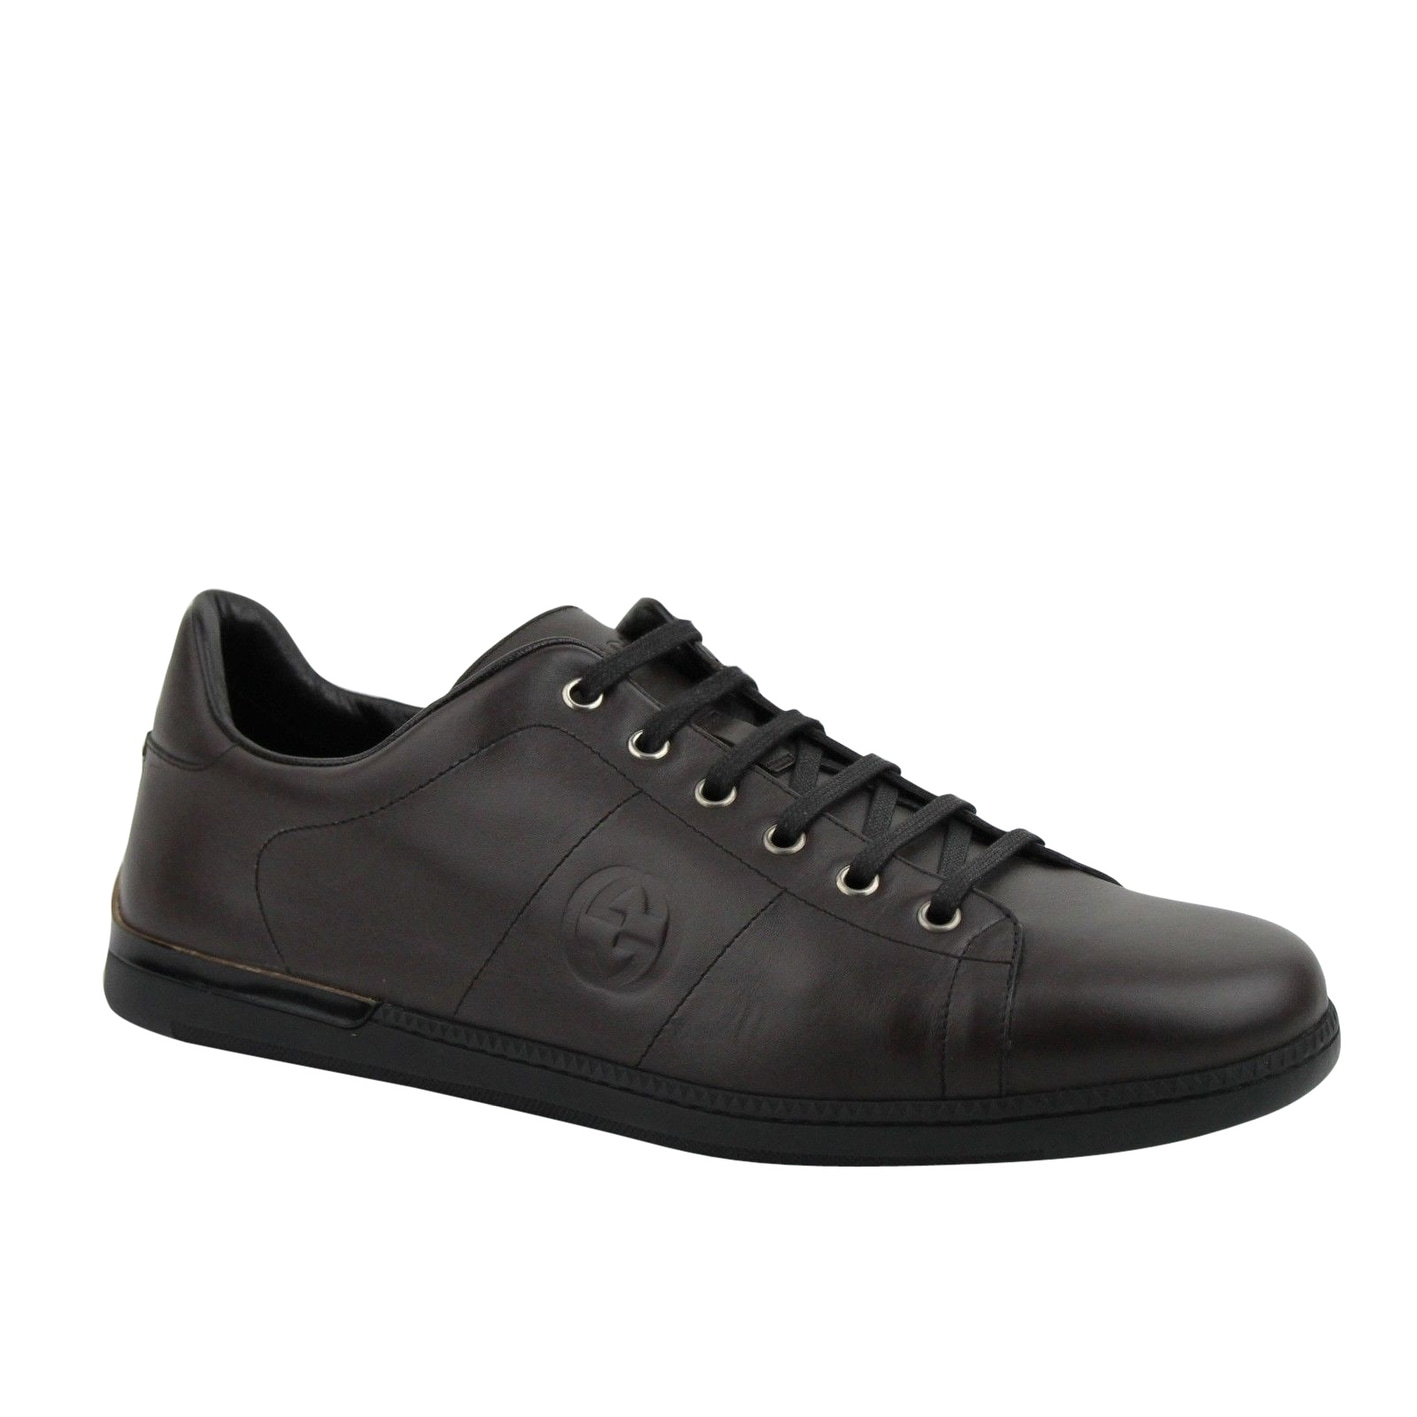 Gucci Men's Lace up Cocoa Brown Leather